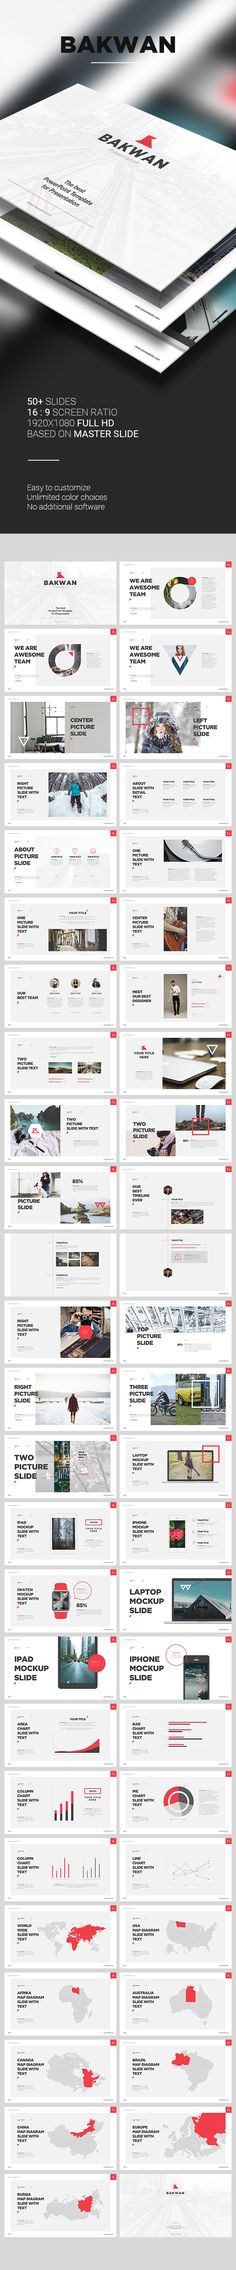 dione keynote template | powerpoint download, business and feminine, Powerpoint templates